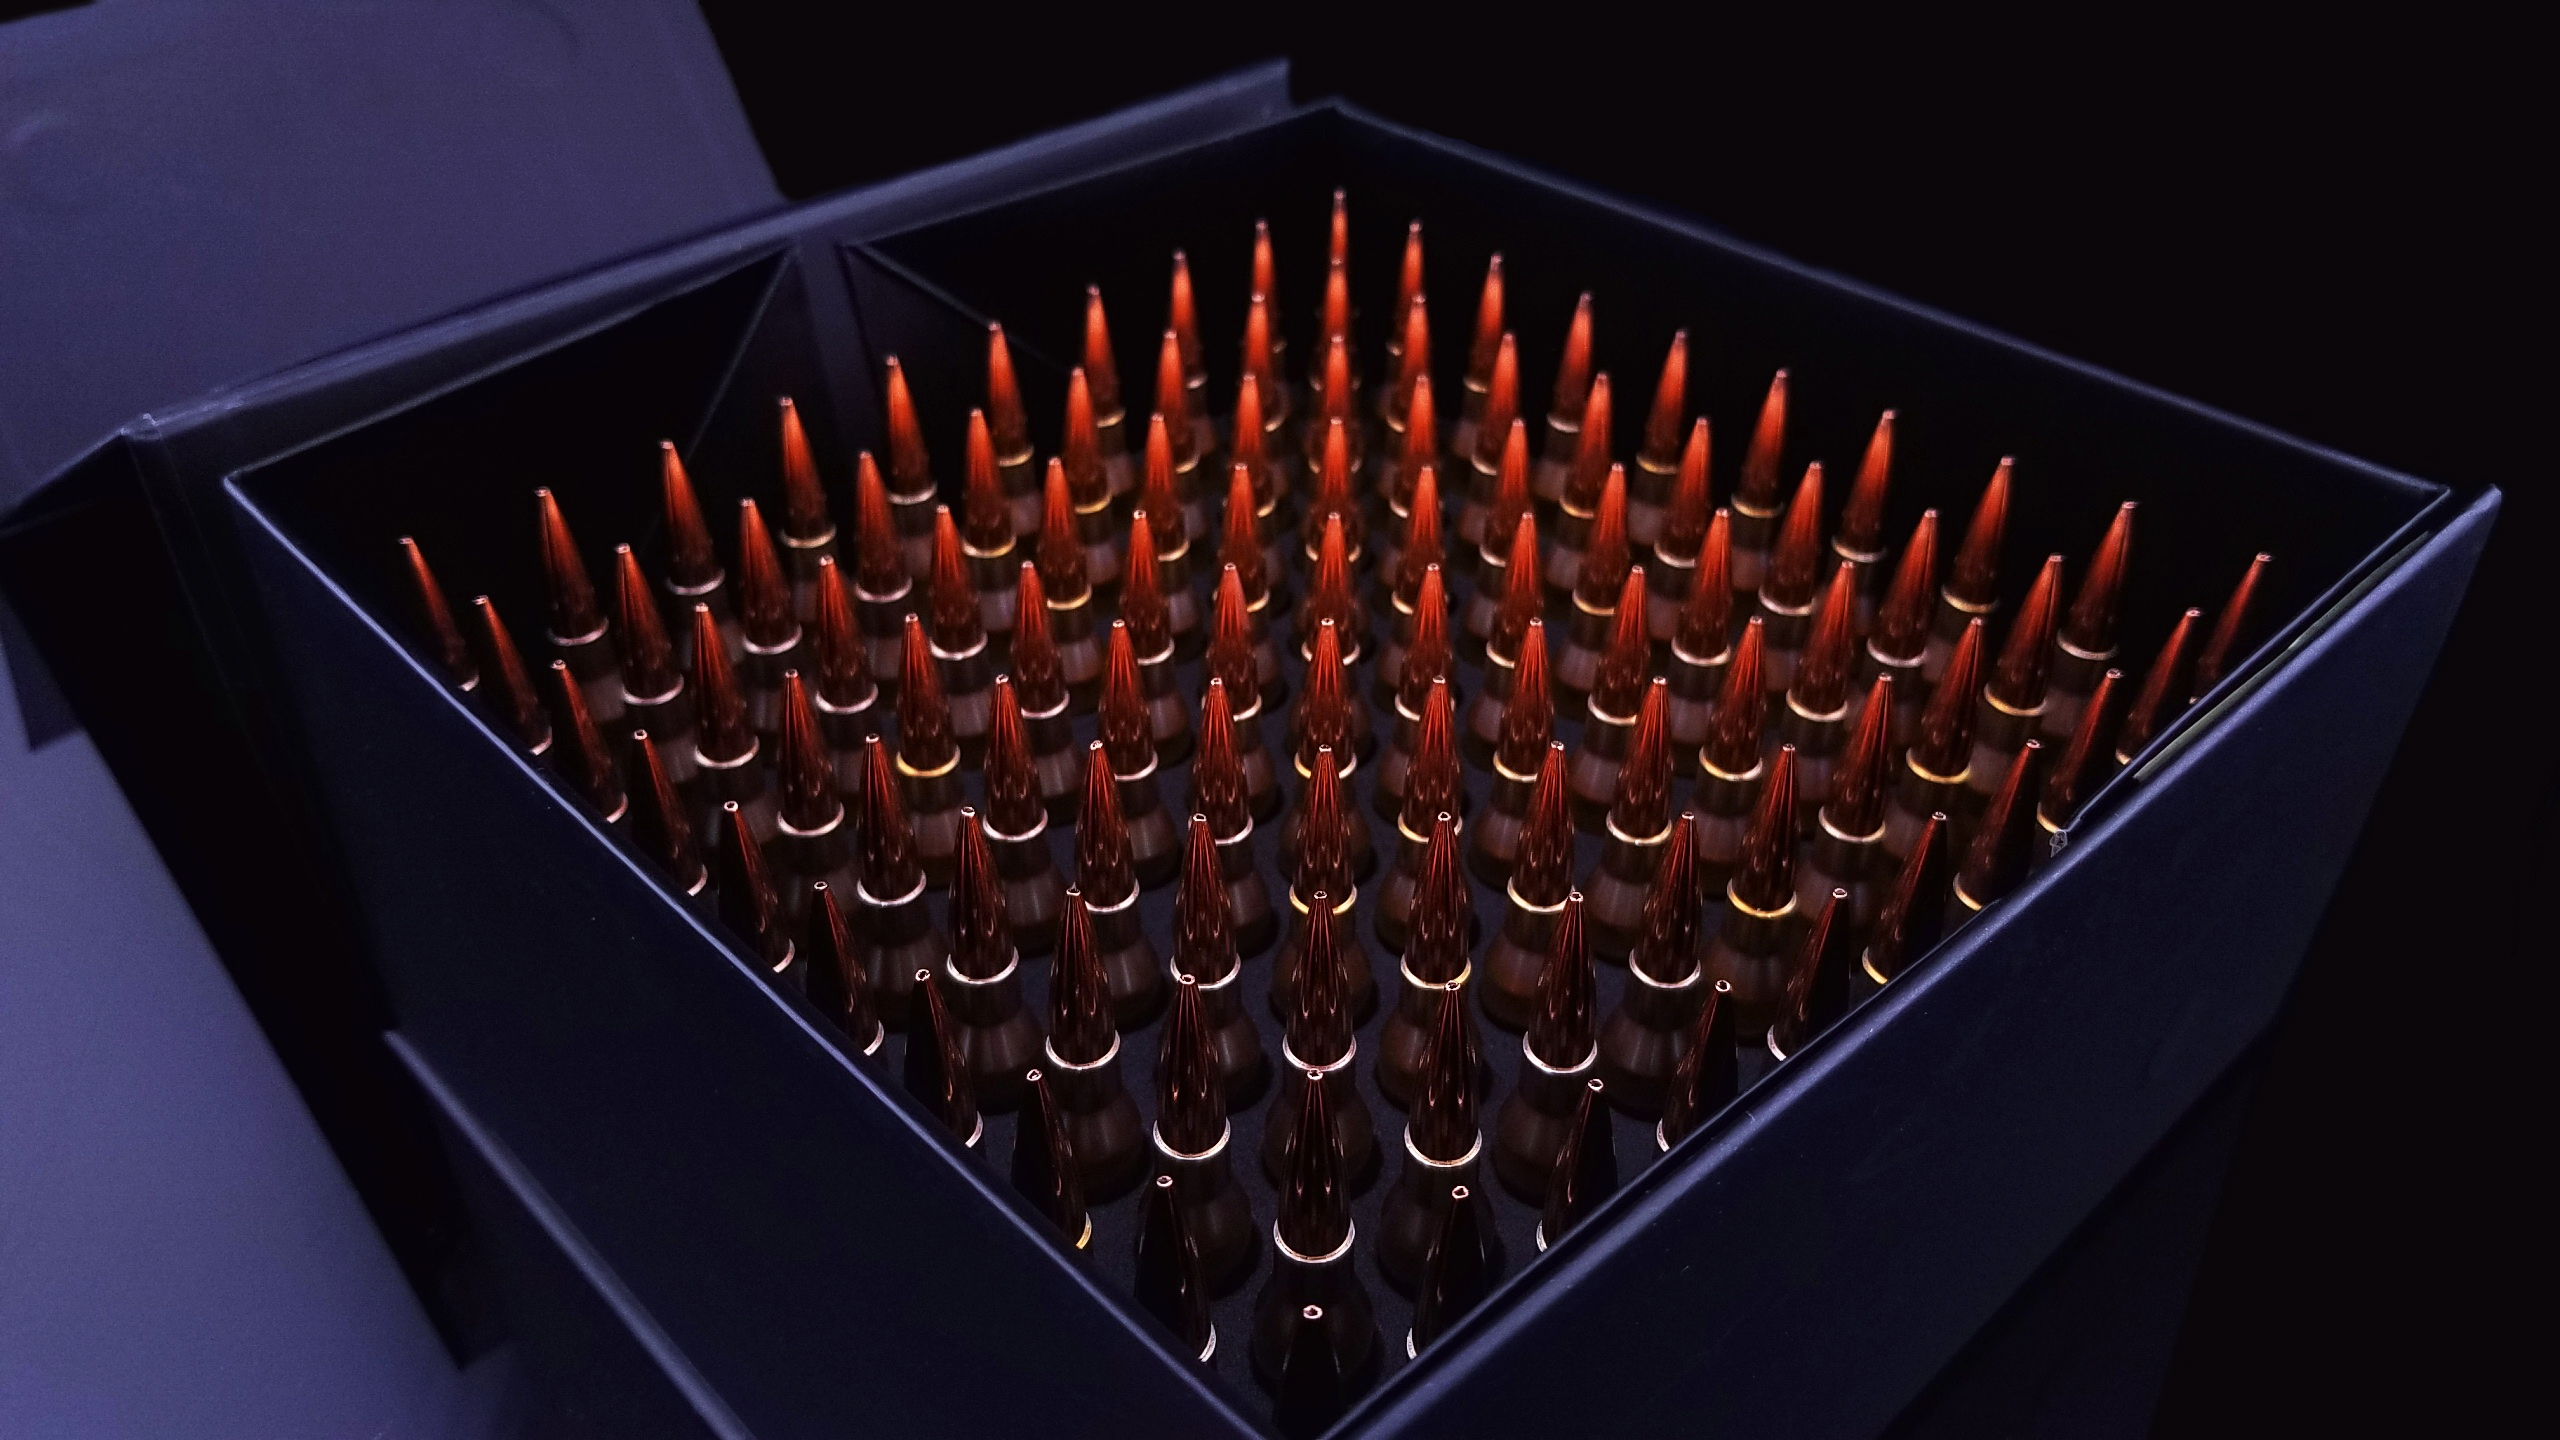 260 Remington 130gr Ammunition Inside Eagle Eye Ammo Box